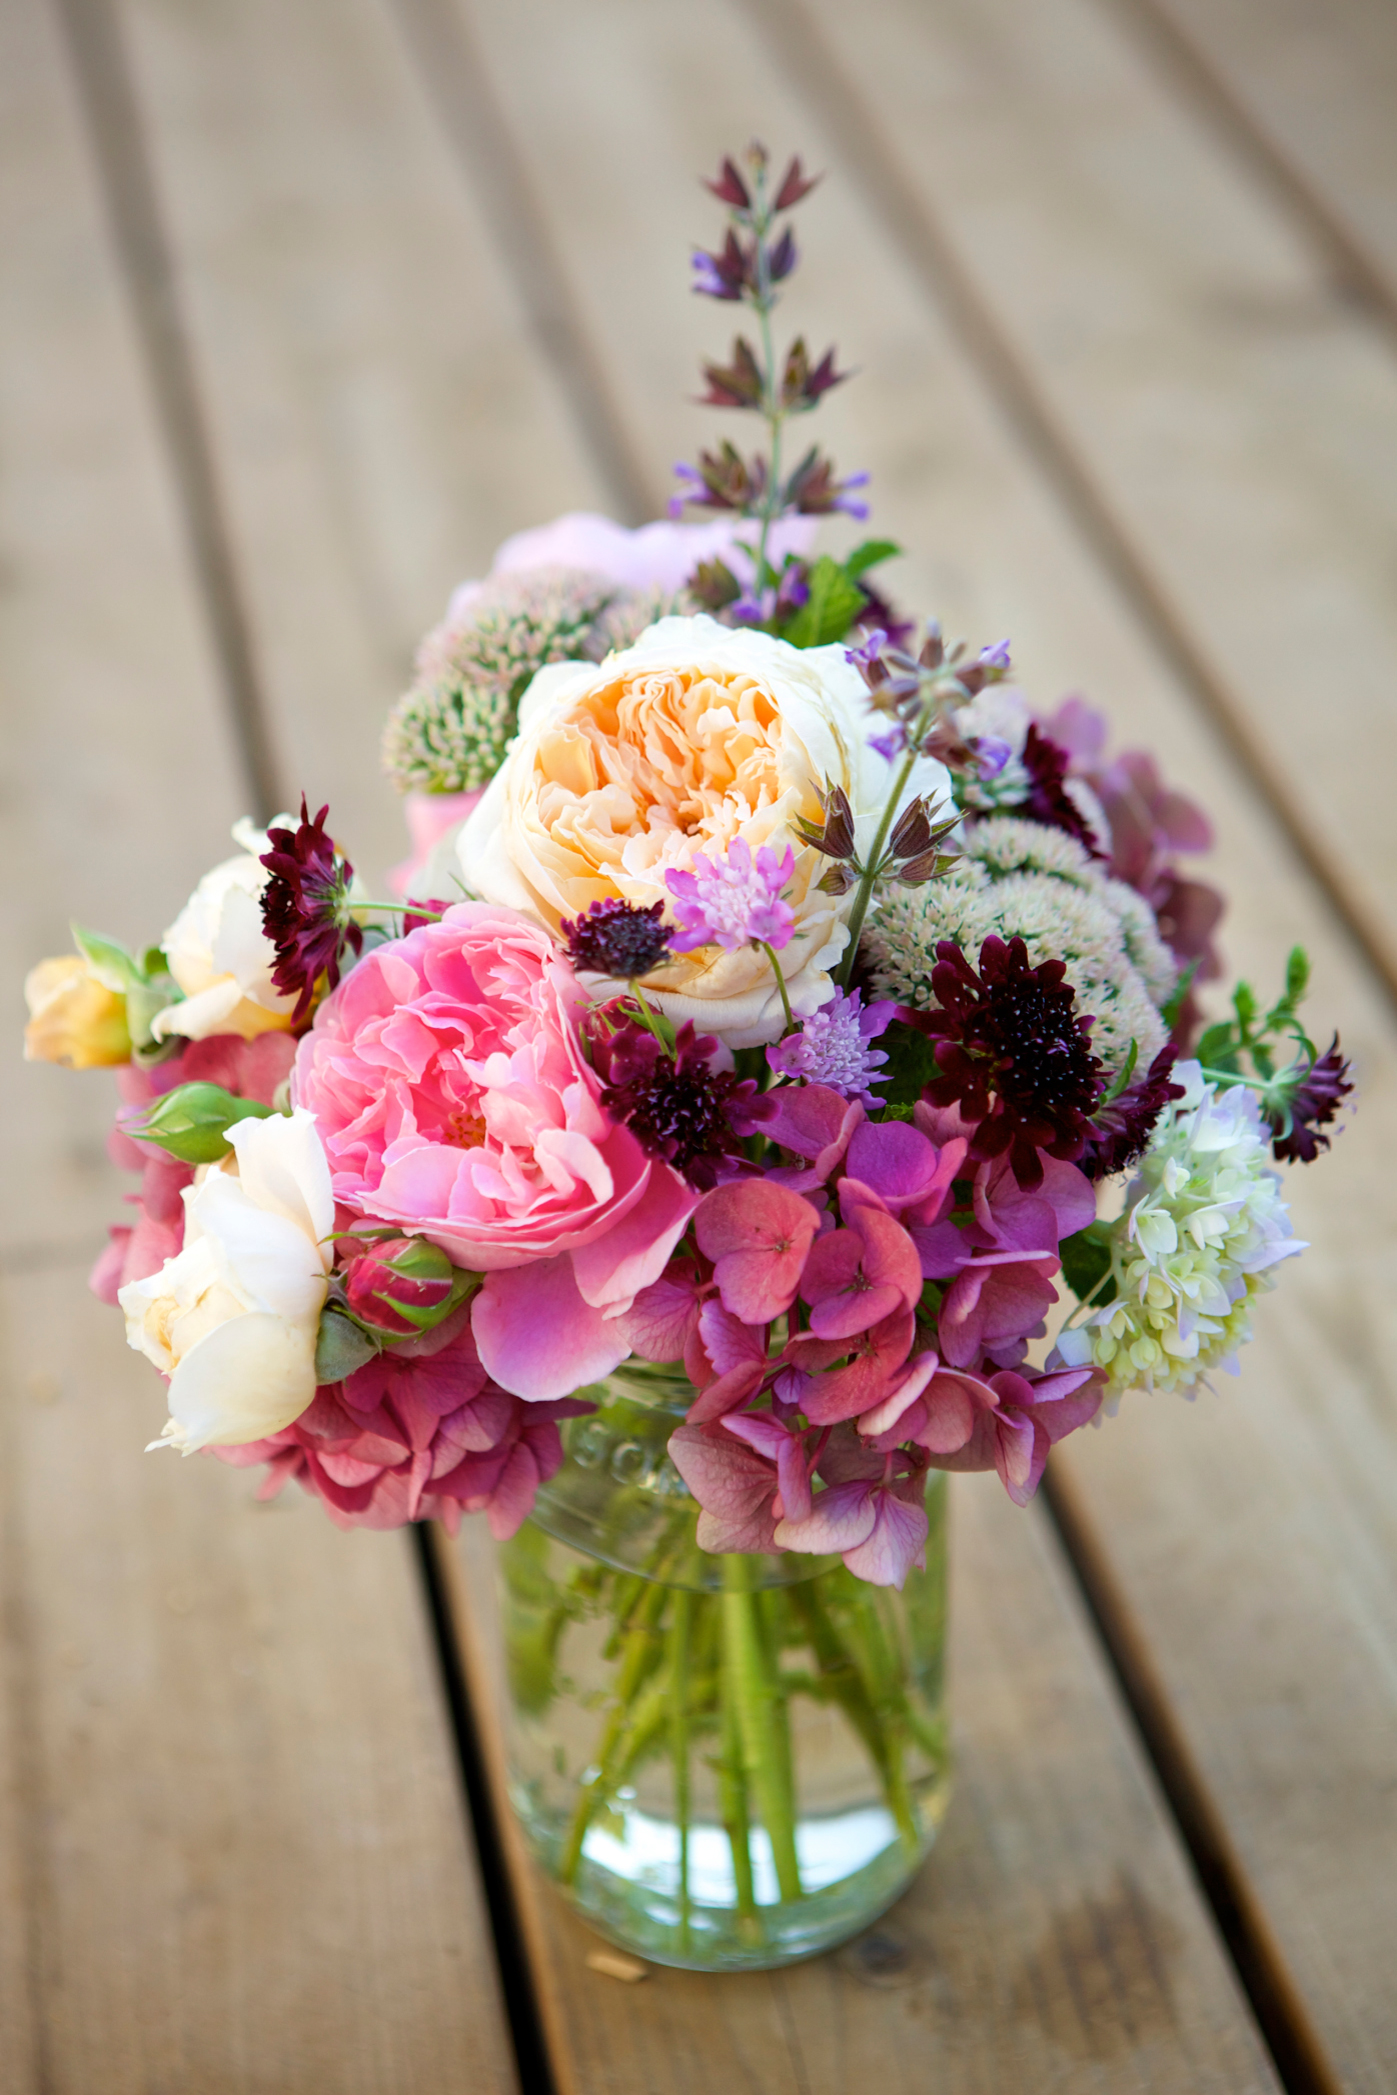 35 Floral Arrangement Ideas Creative Diy Flower Arrangements